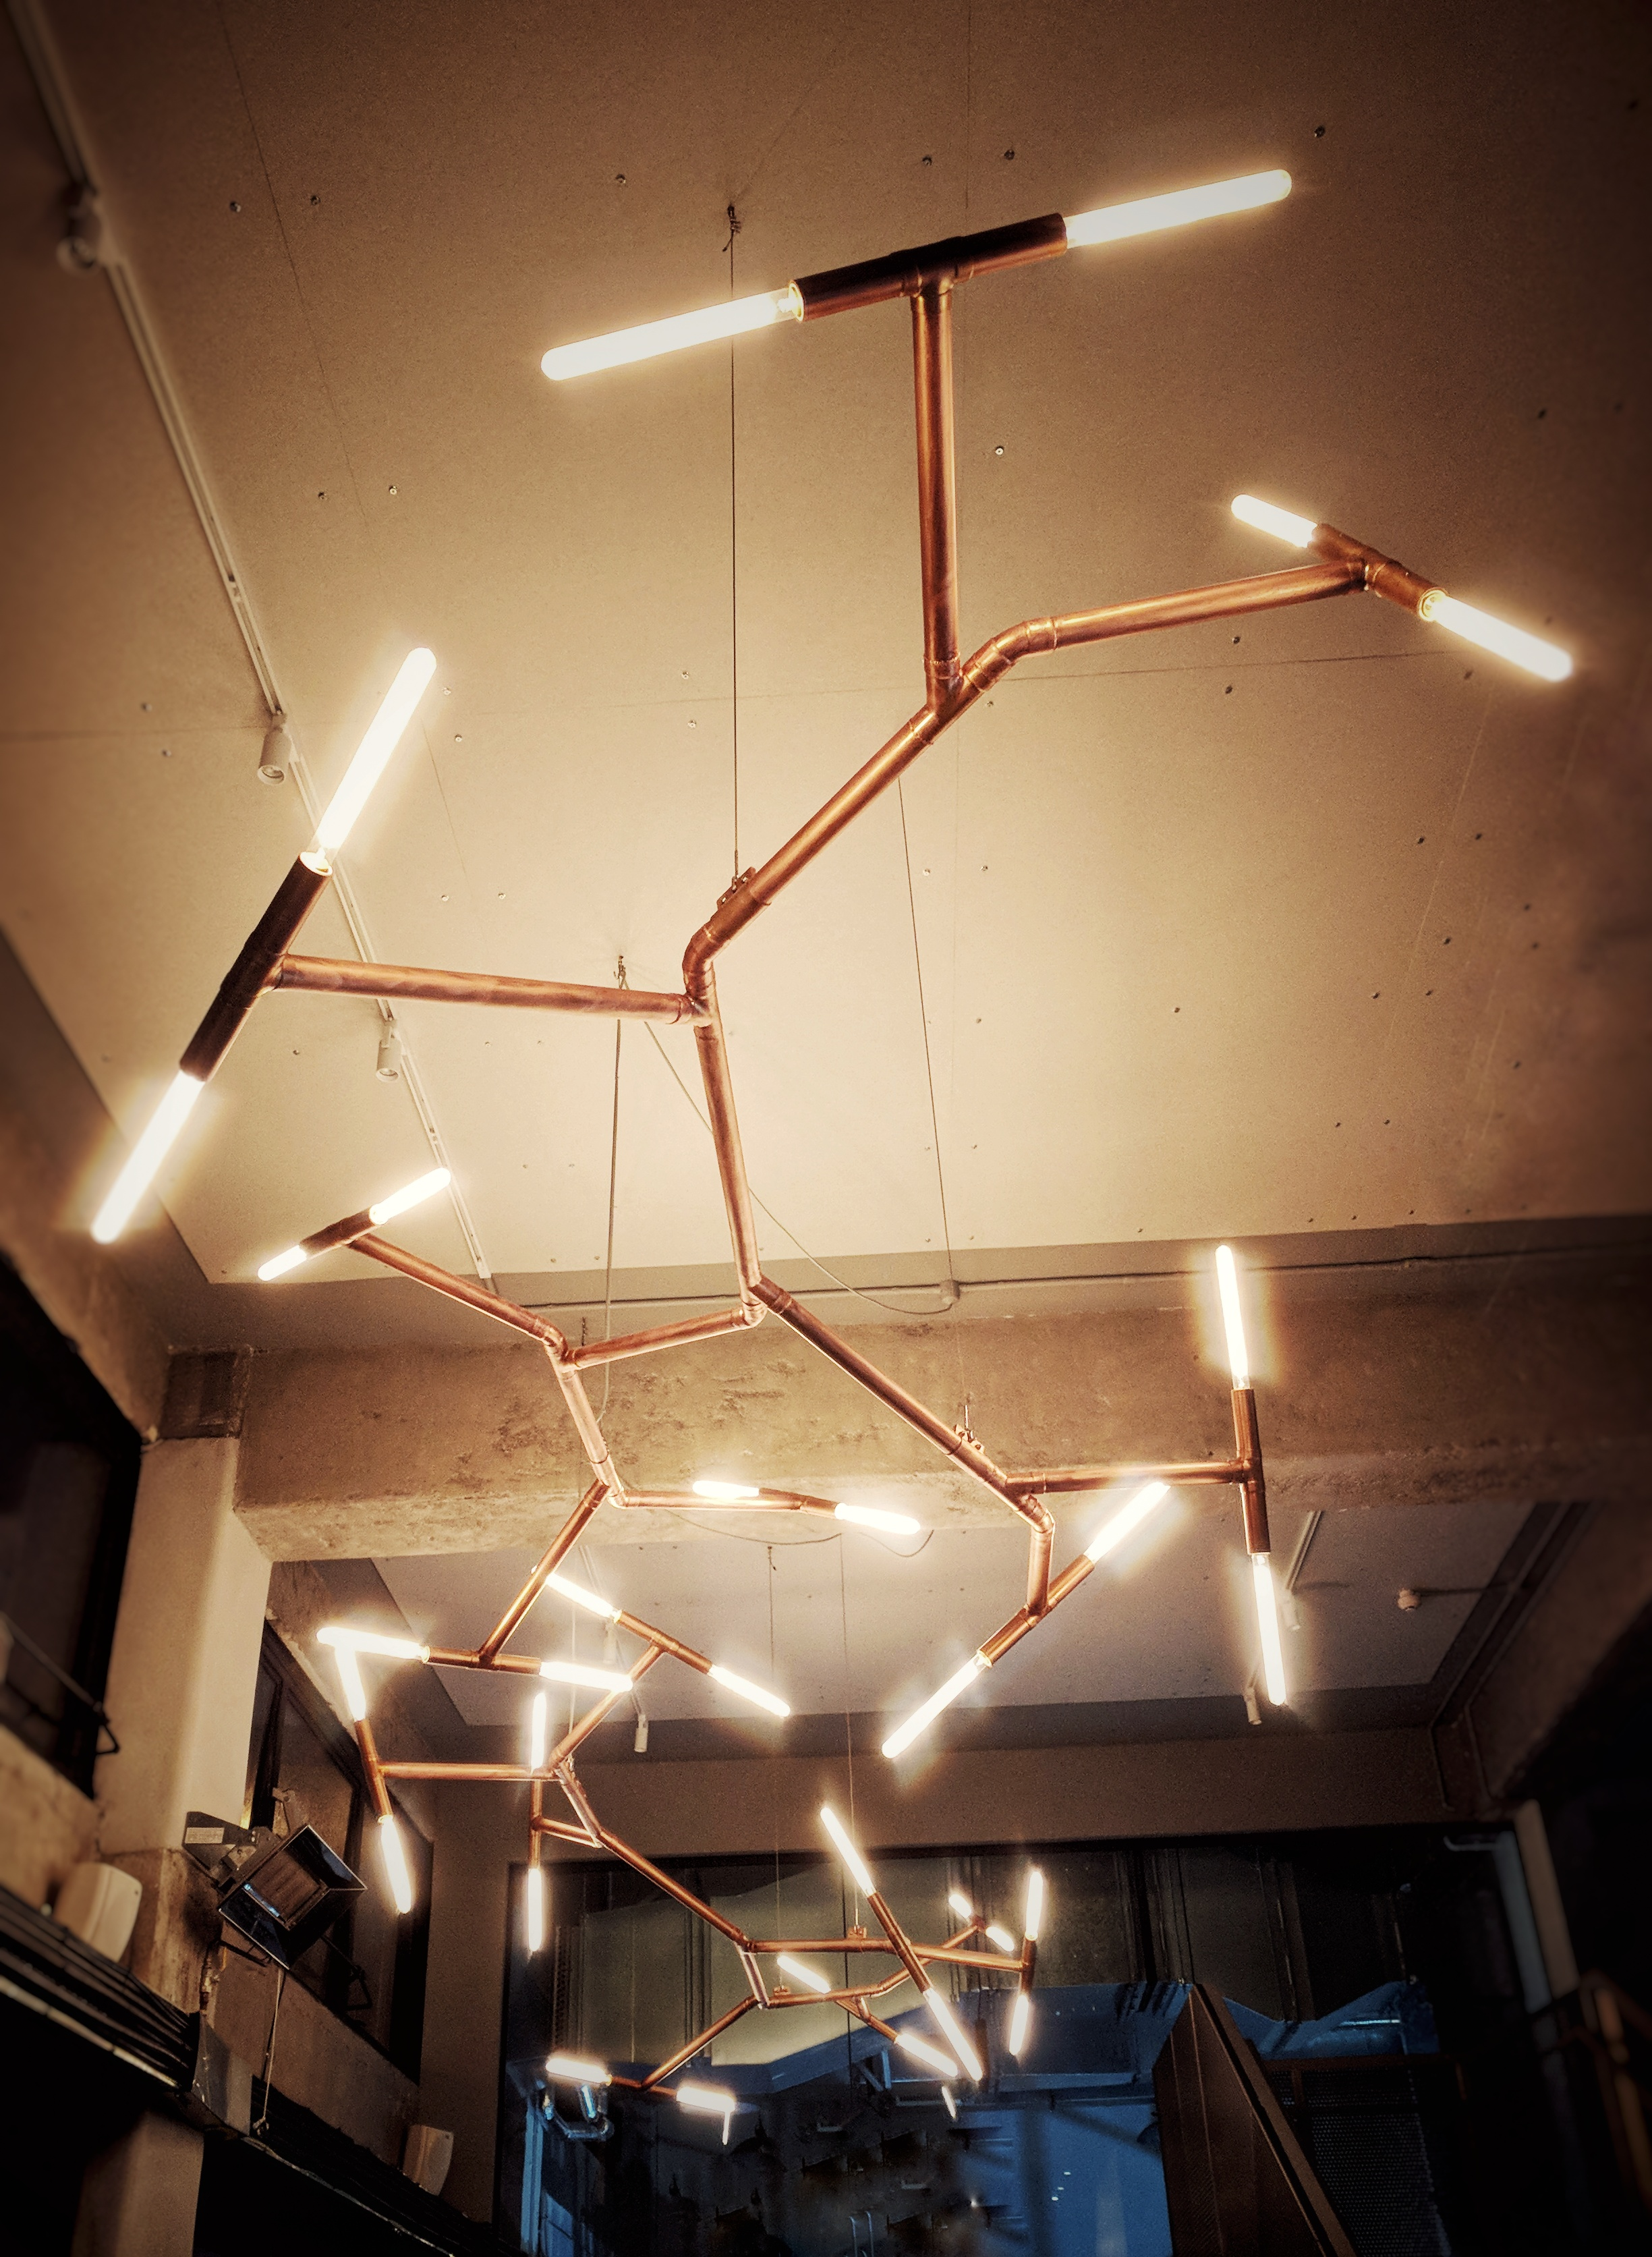 Lights in the shape of the alcohol molecule